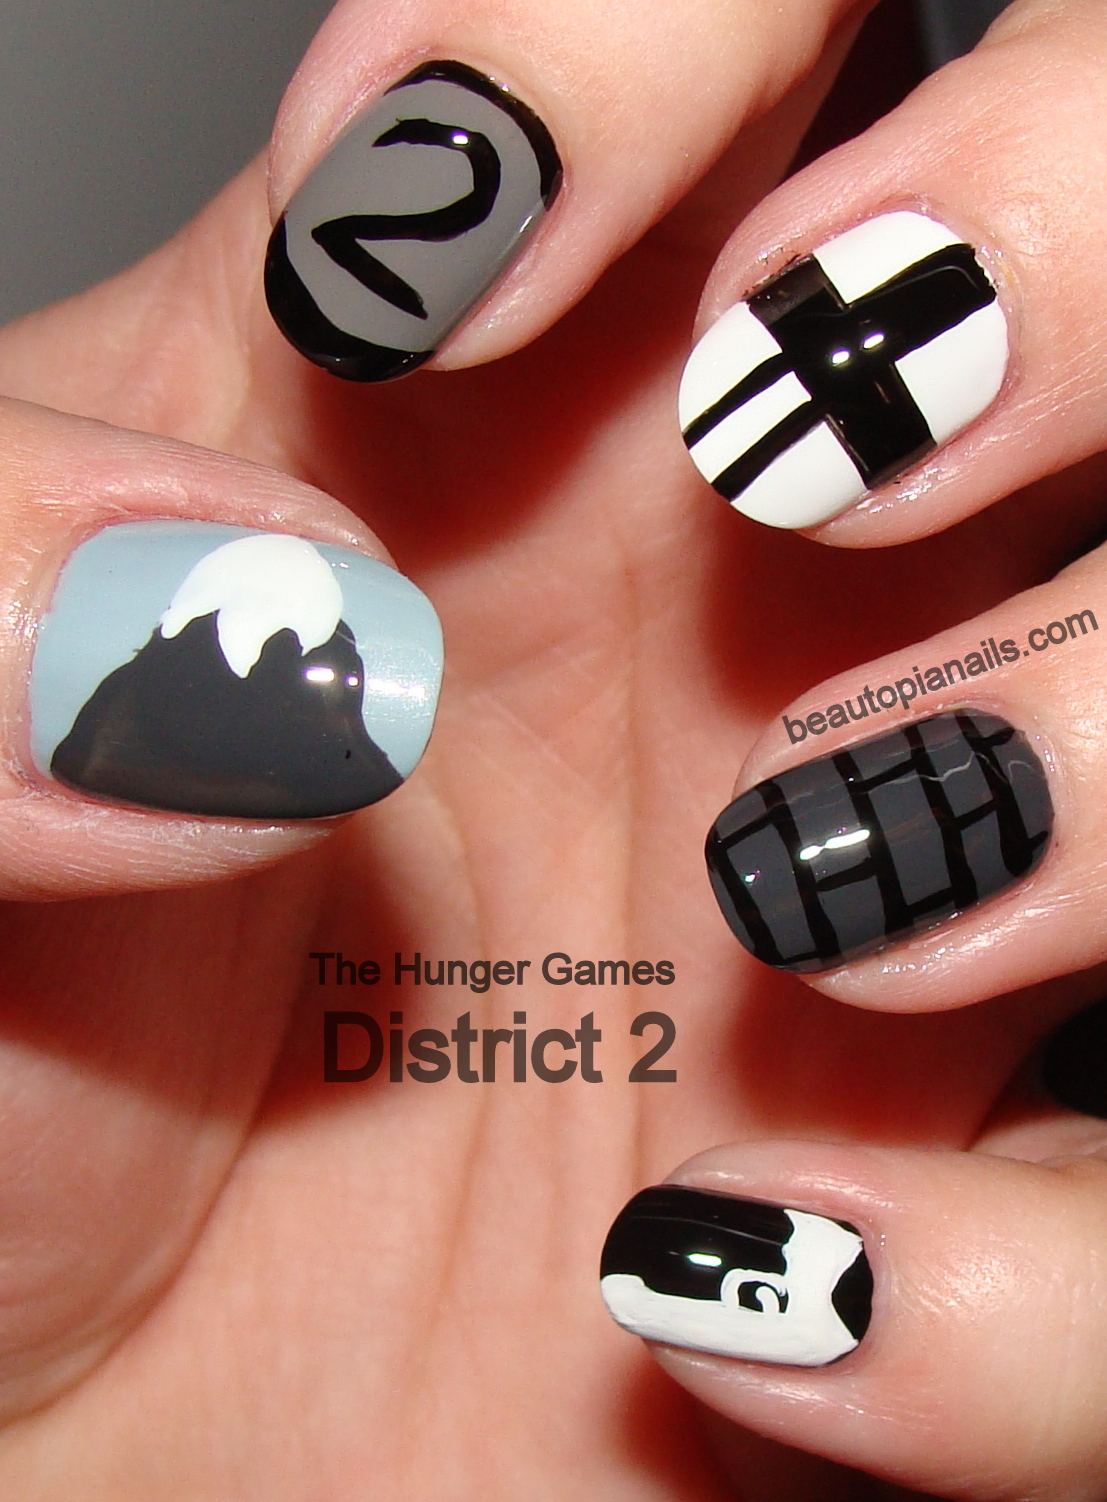 ... my hunger games nail art series i did nails based on district 2 in the